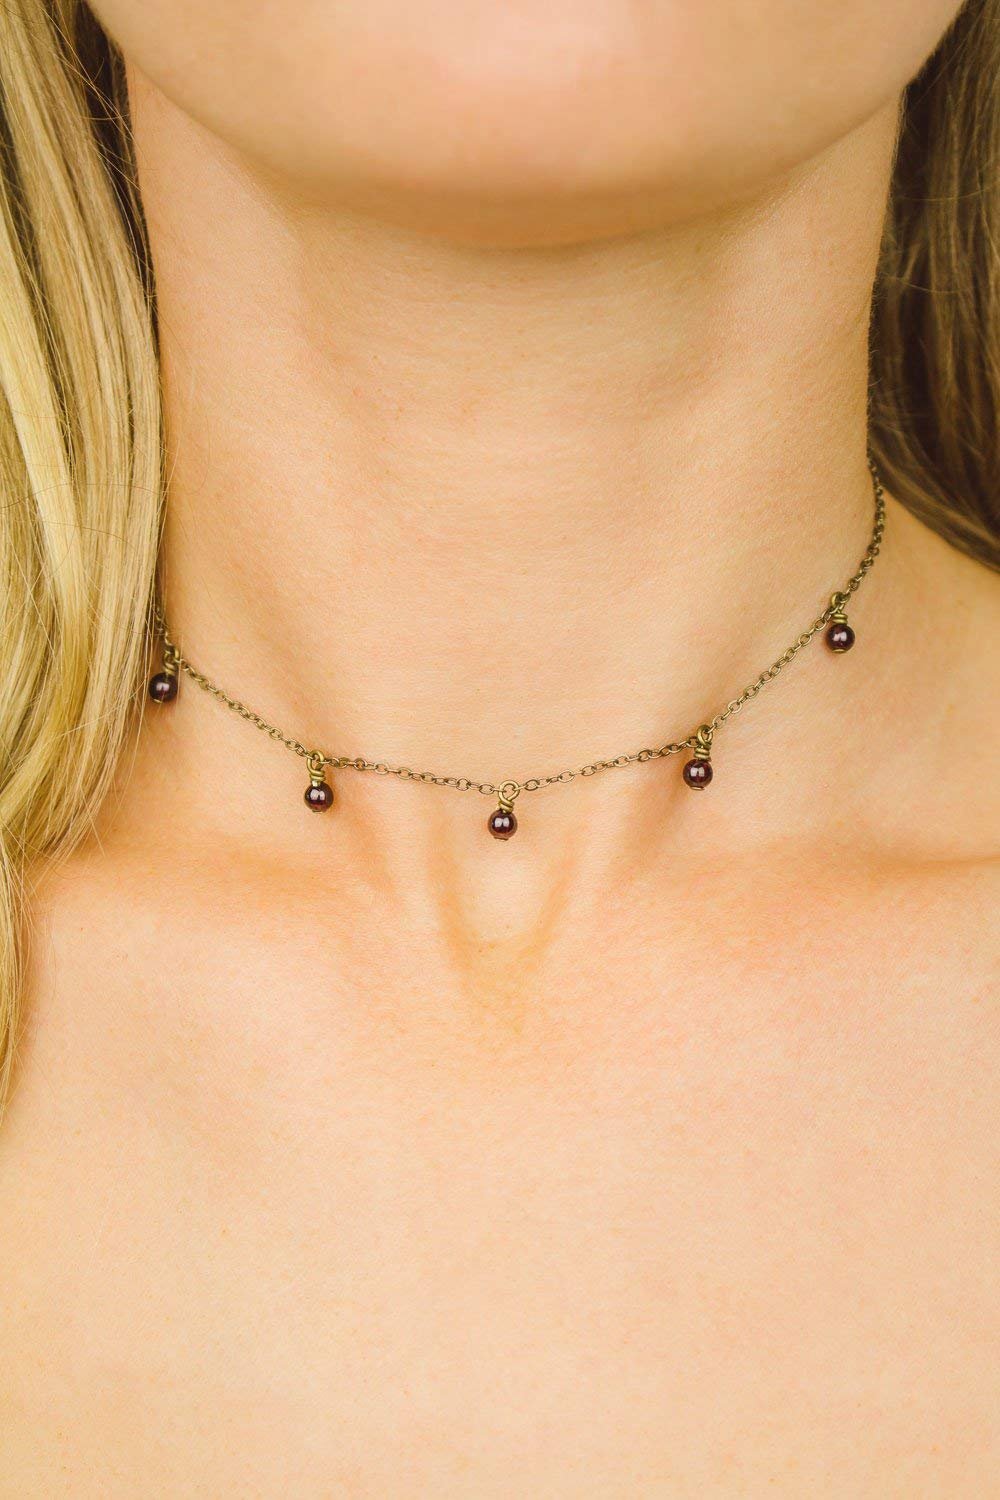 January birthstone Dainty beaded garnet lariat Y necklace in bronze 16 chain with 2 adjustable extender